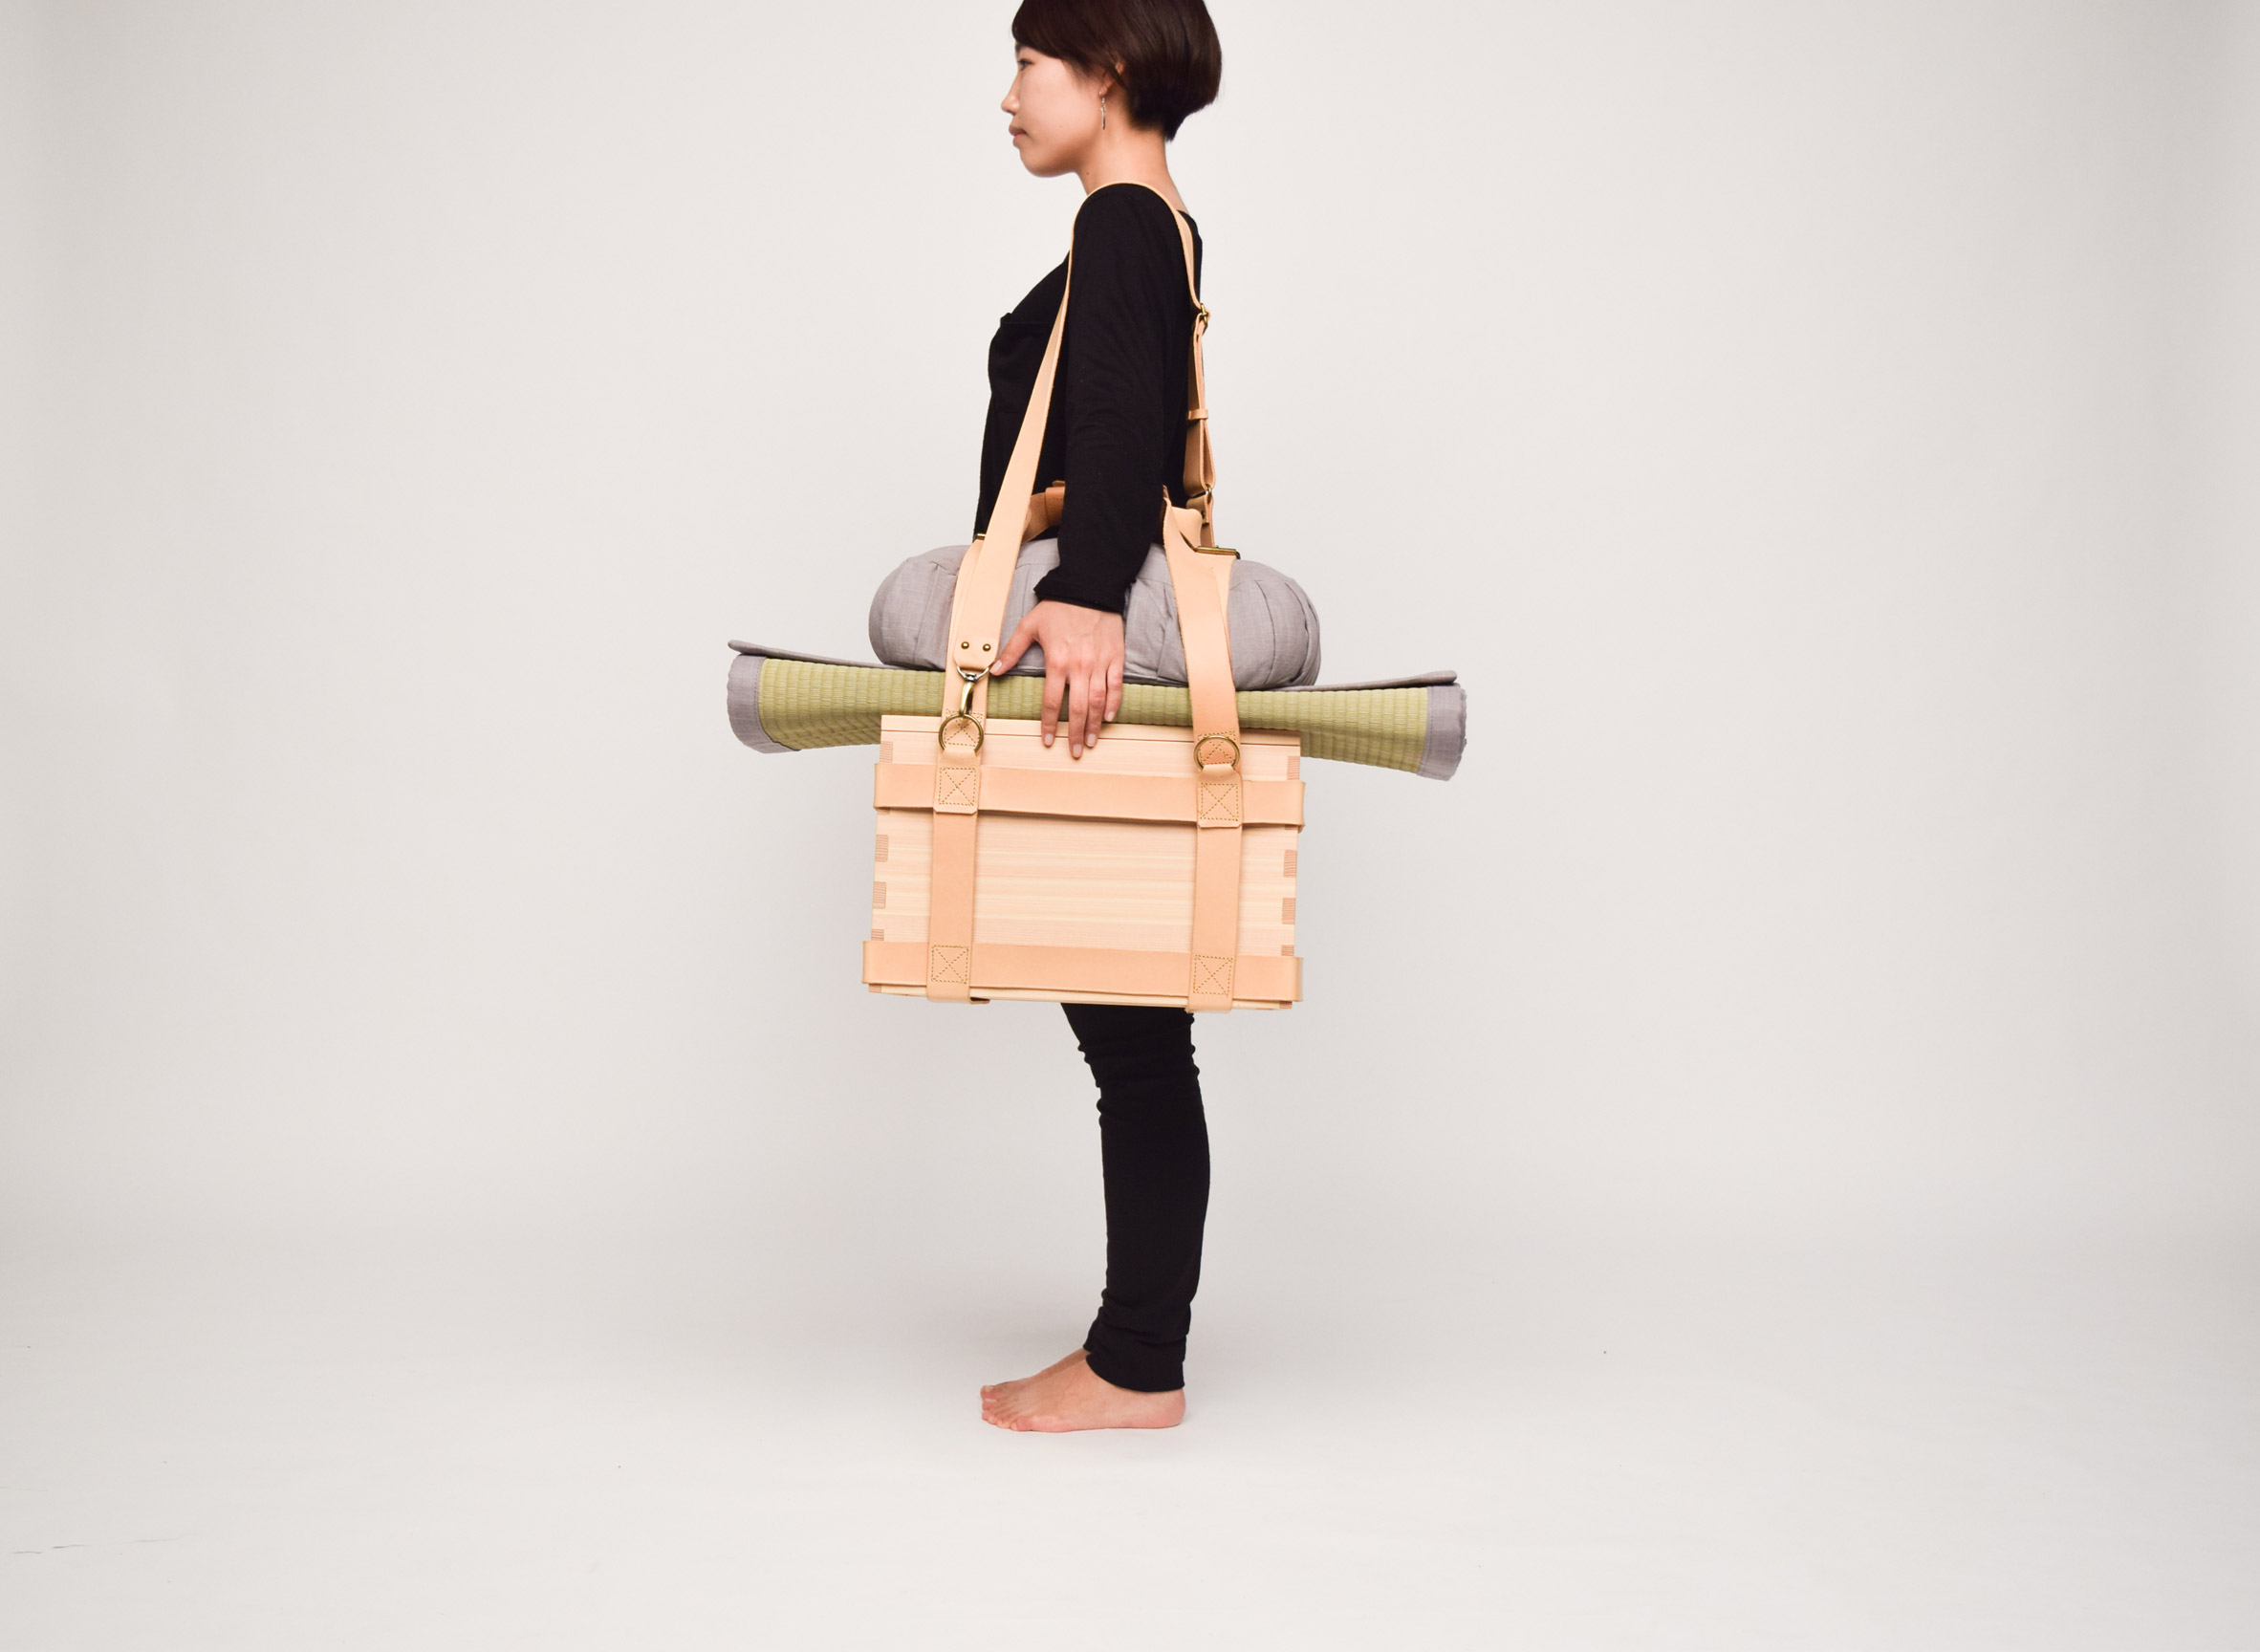 Gerardo Osio designs range of mobile objects to suit a Nomadic lifestyle